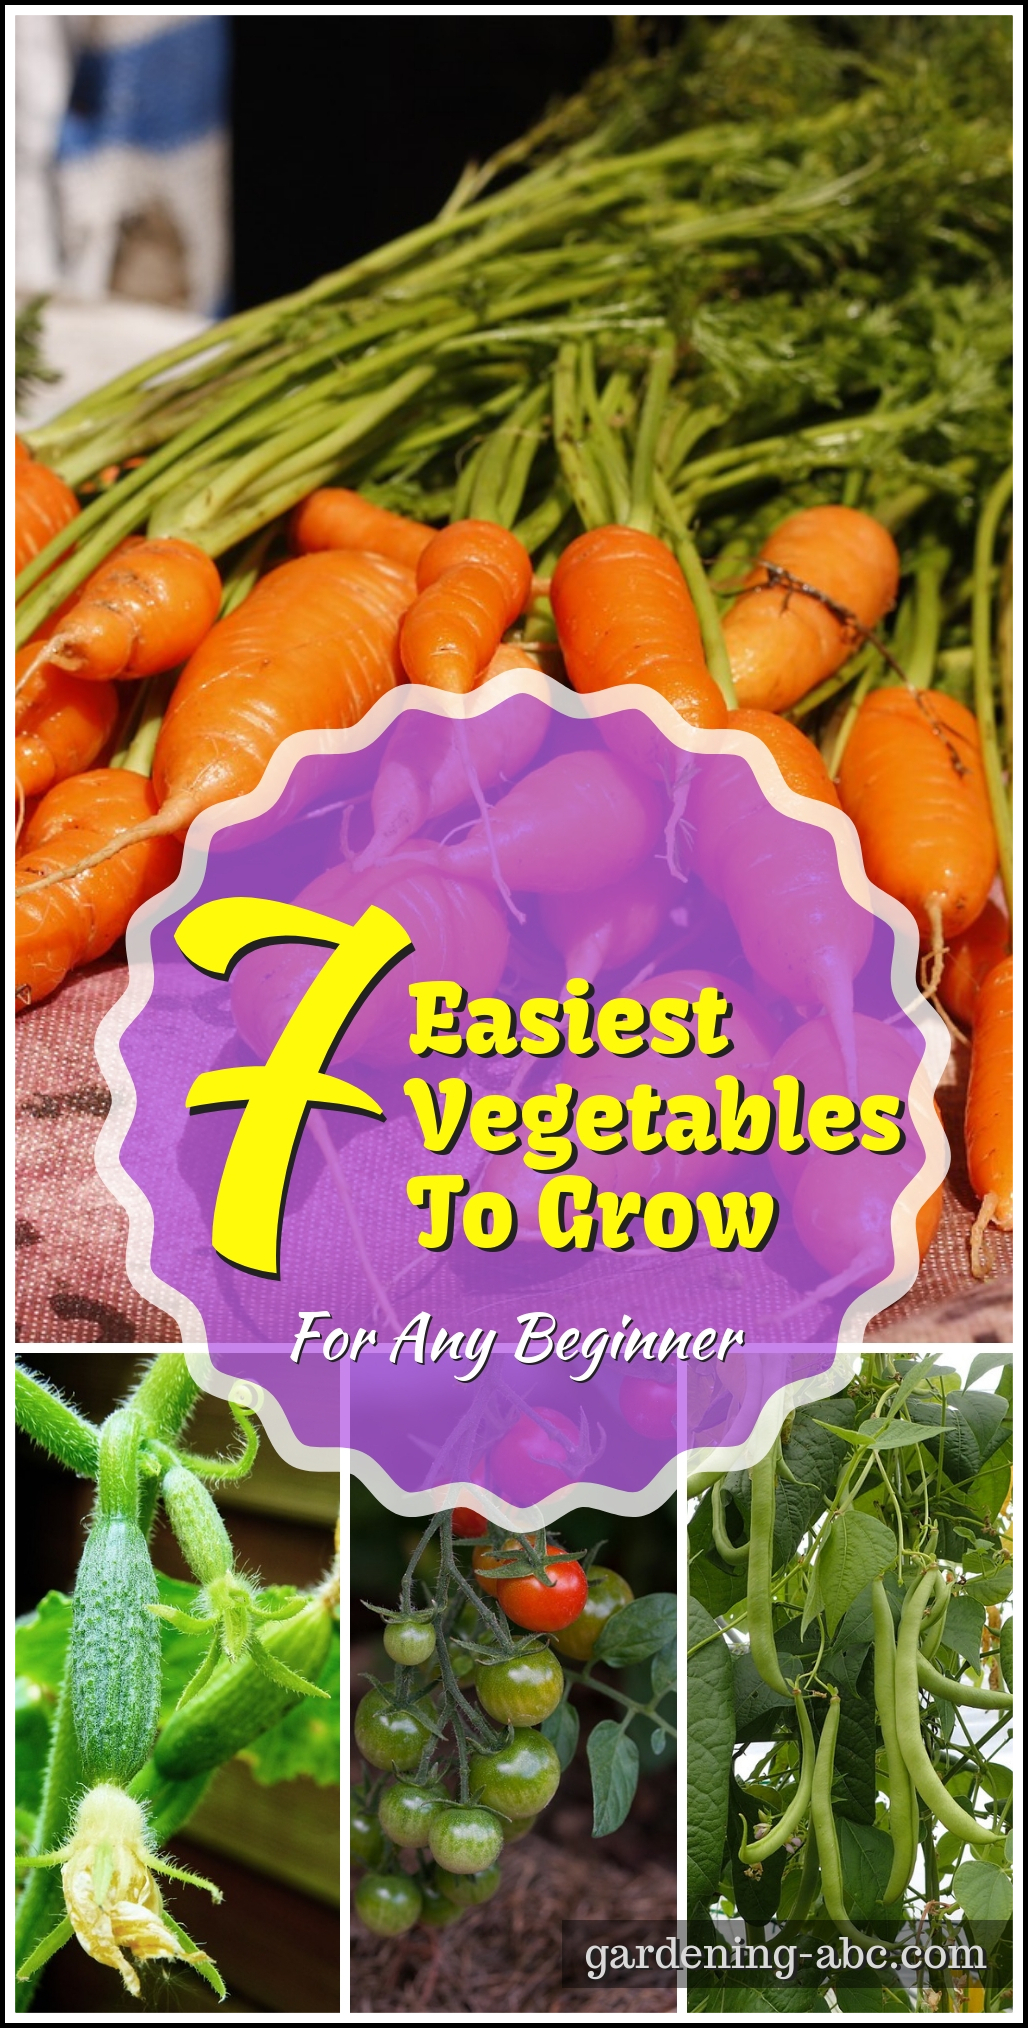 Easiest Vegetables To Grow for beginners